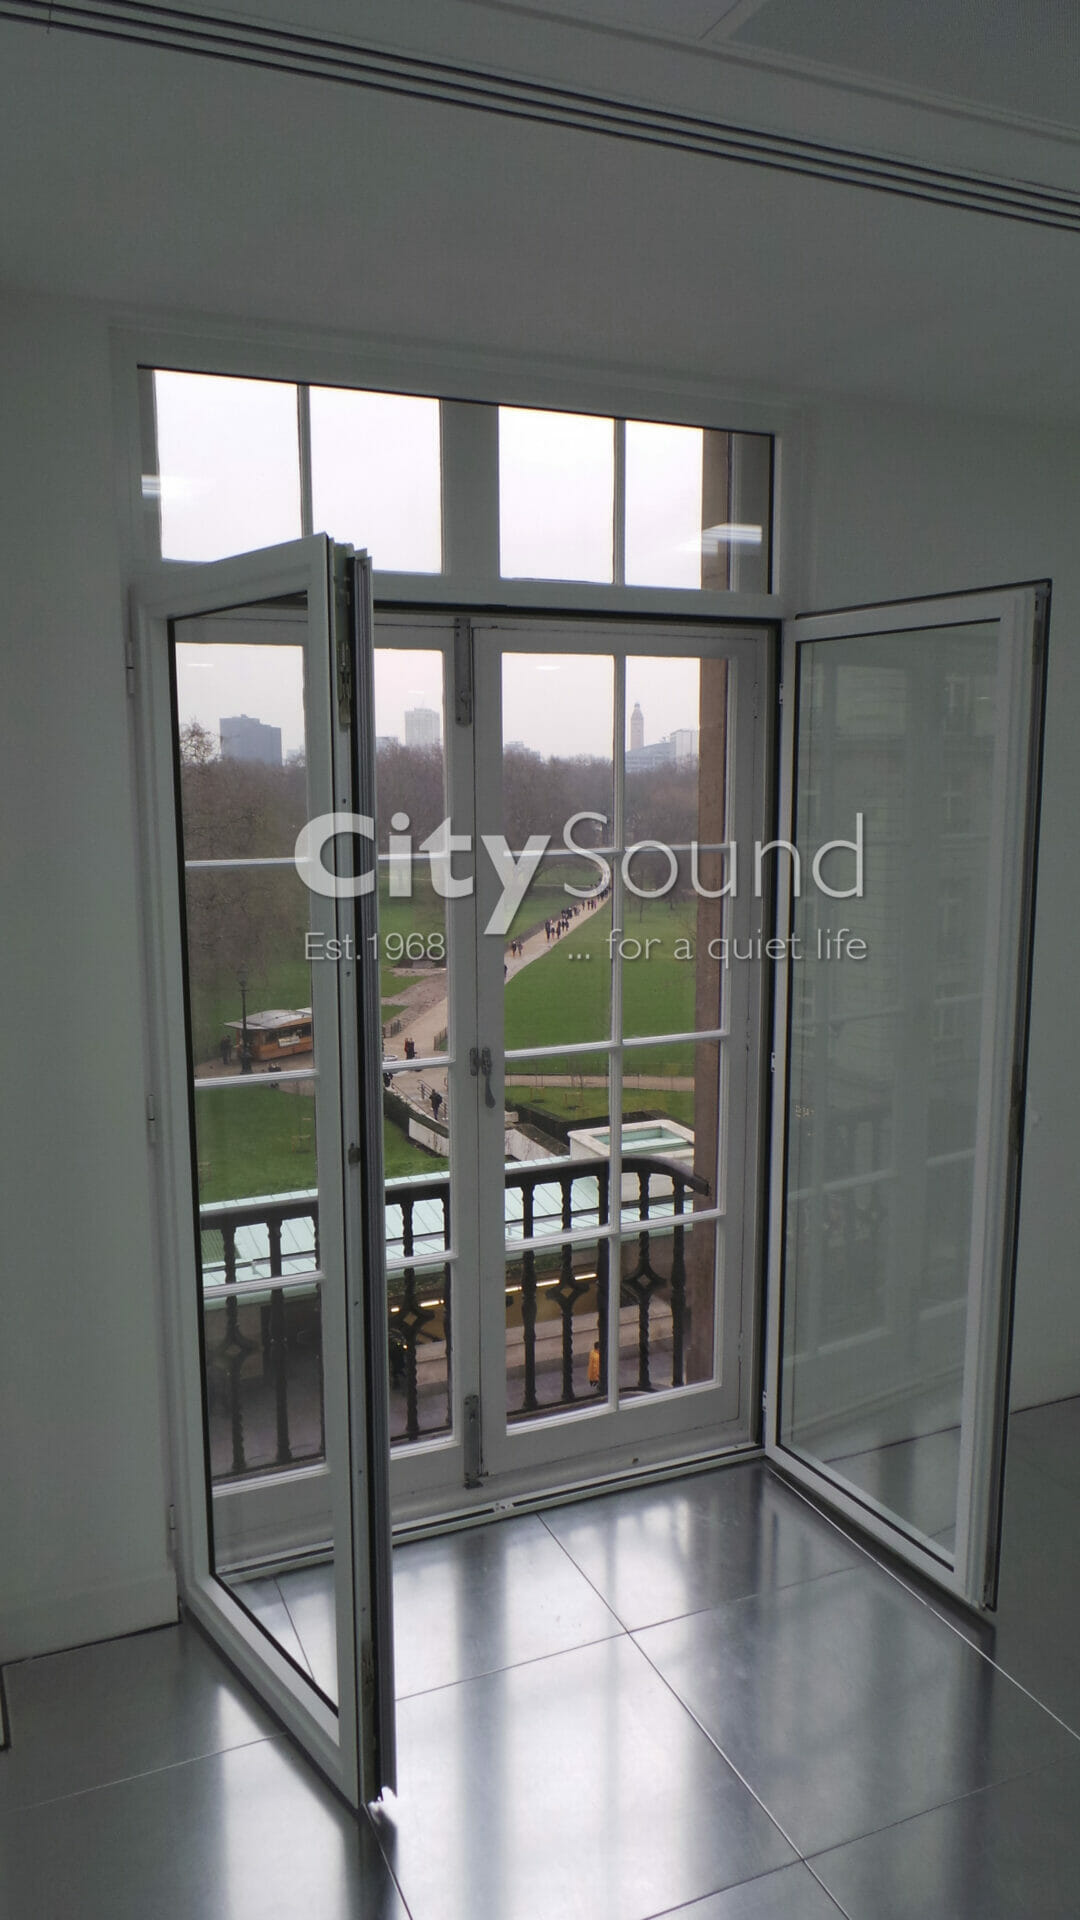 06. Commercial secondary glazing (Double doors) fitted. Glazed with thick acoustic glass for noise reduction (Mayfair, London)